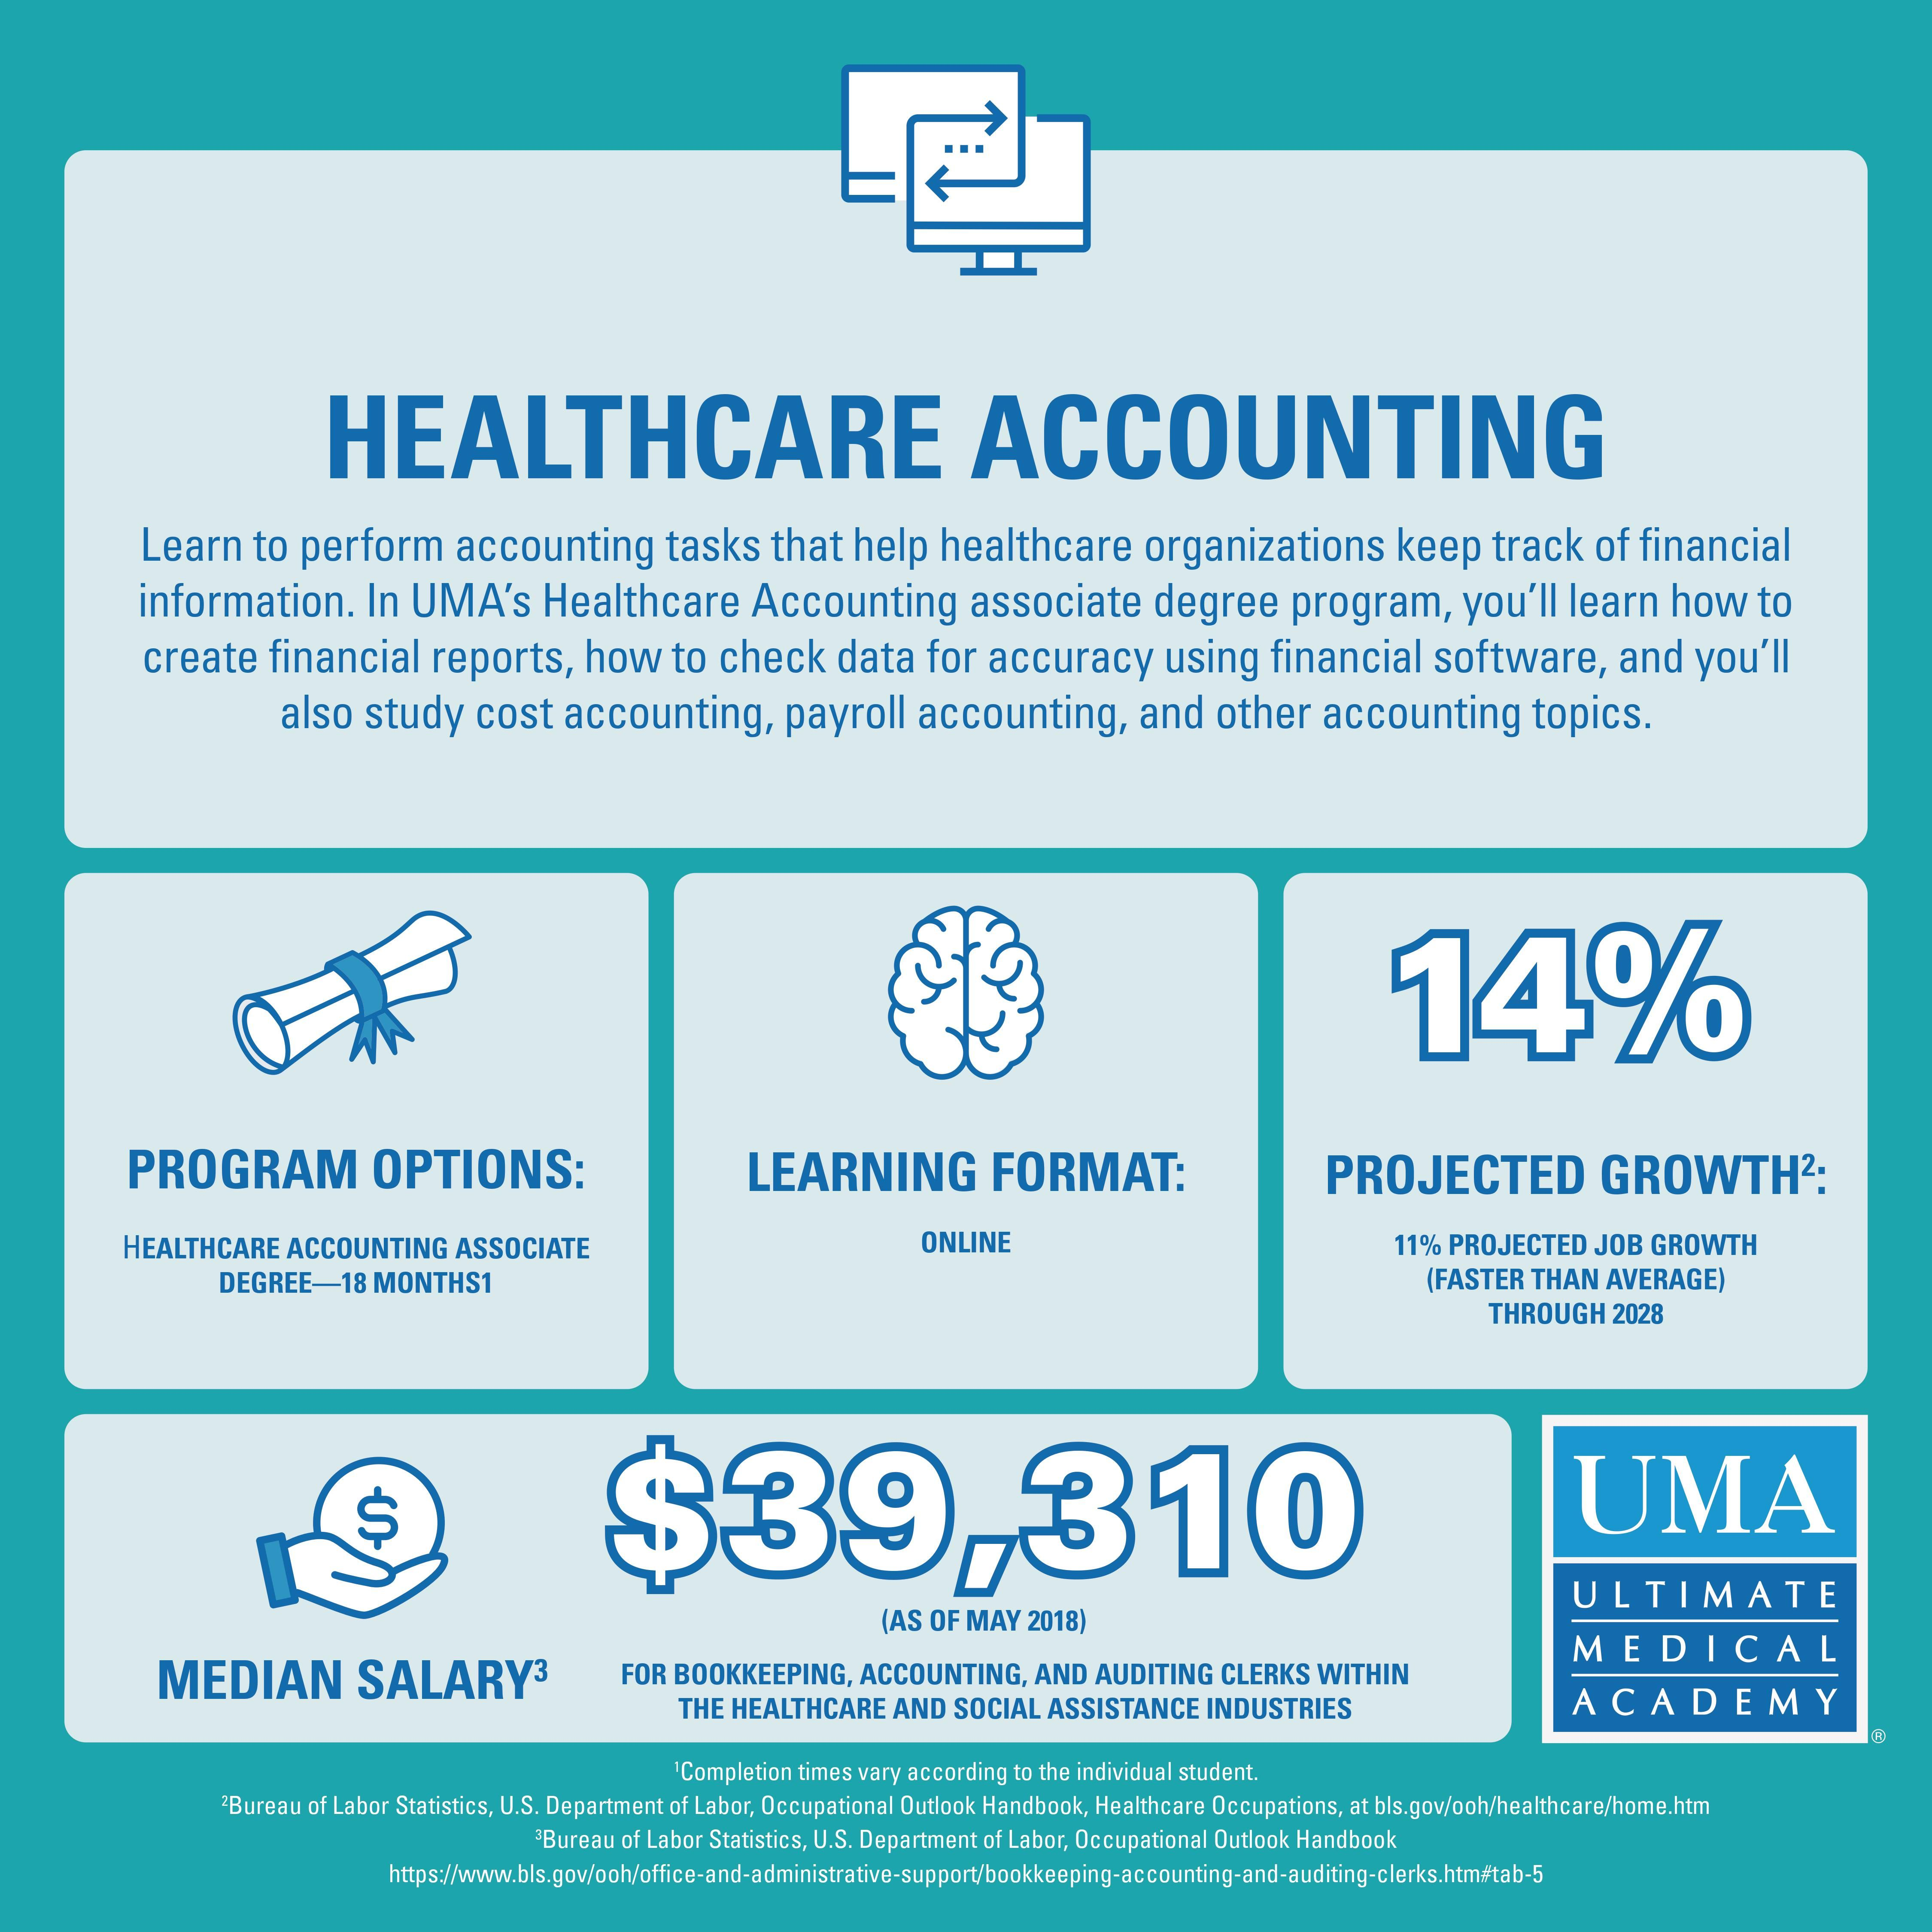 Healthcare Accounting Health Information Management Information Technology Health Technology